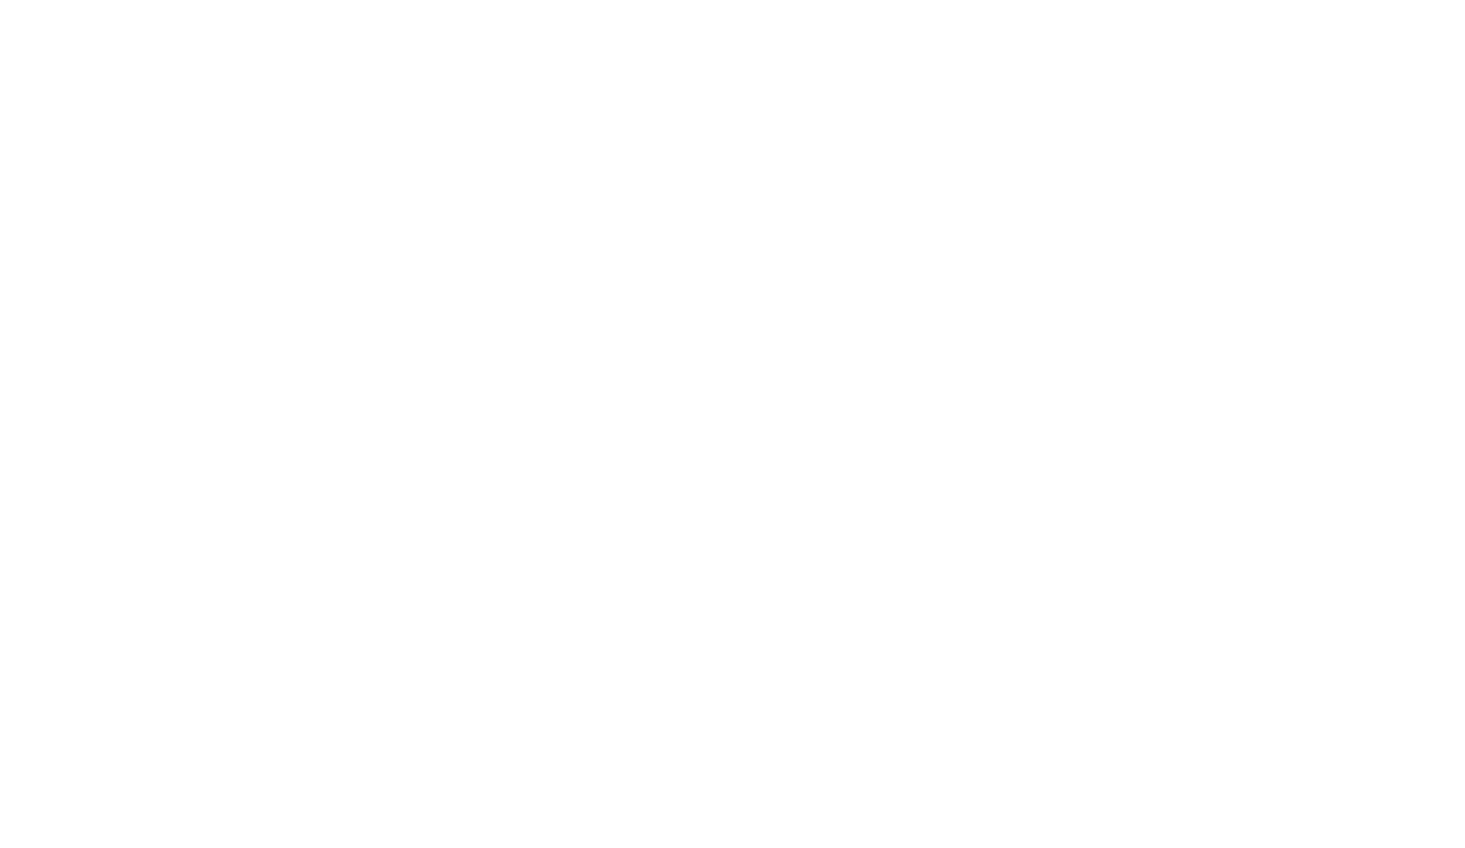 Bacon Brothers Franchising | Bacon Brothers Food Group